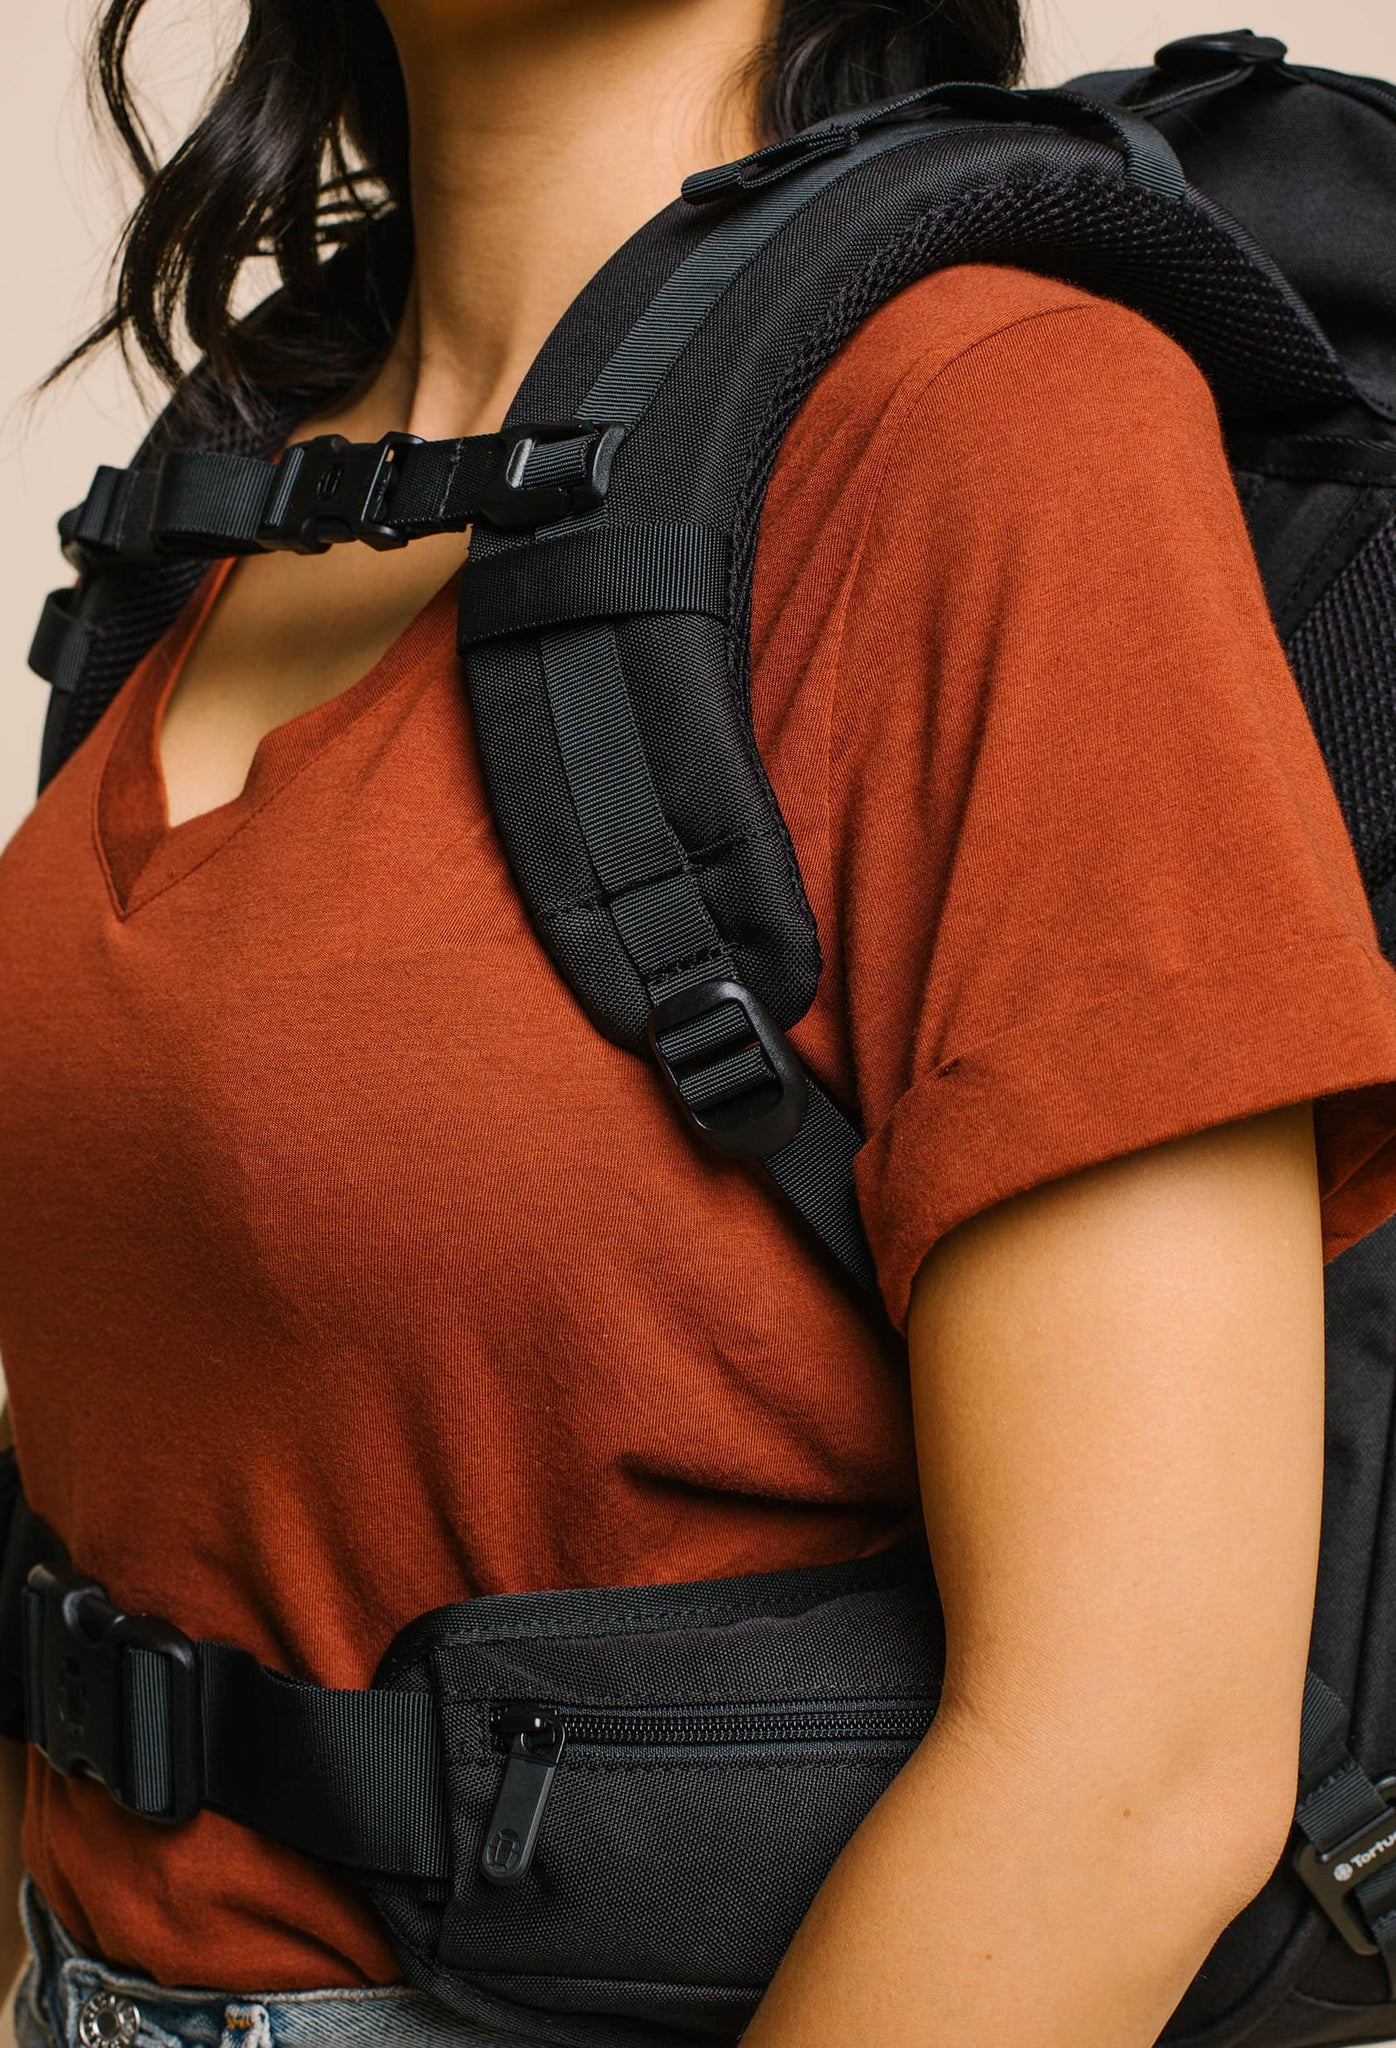 product/ Soft foam shoulder straps are contoured for a woman's frame